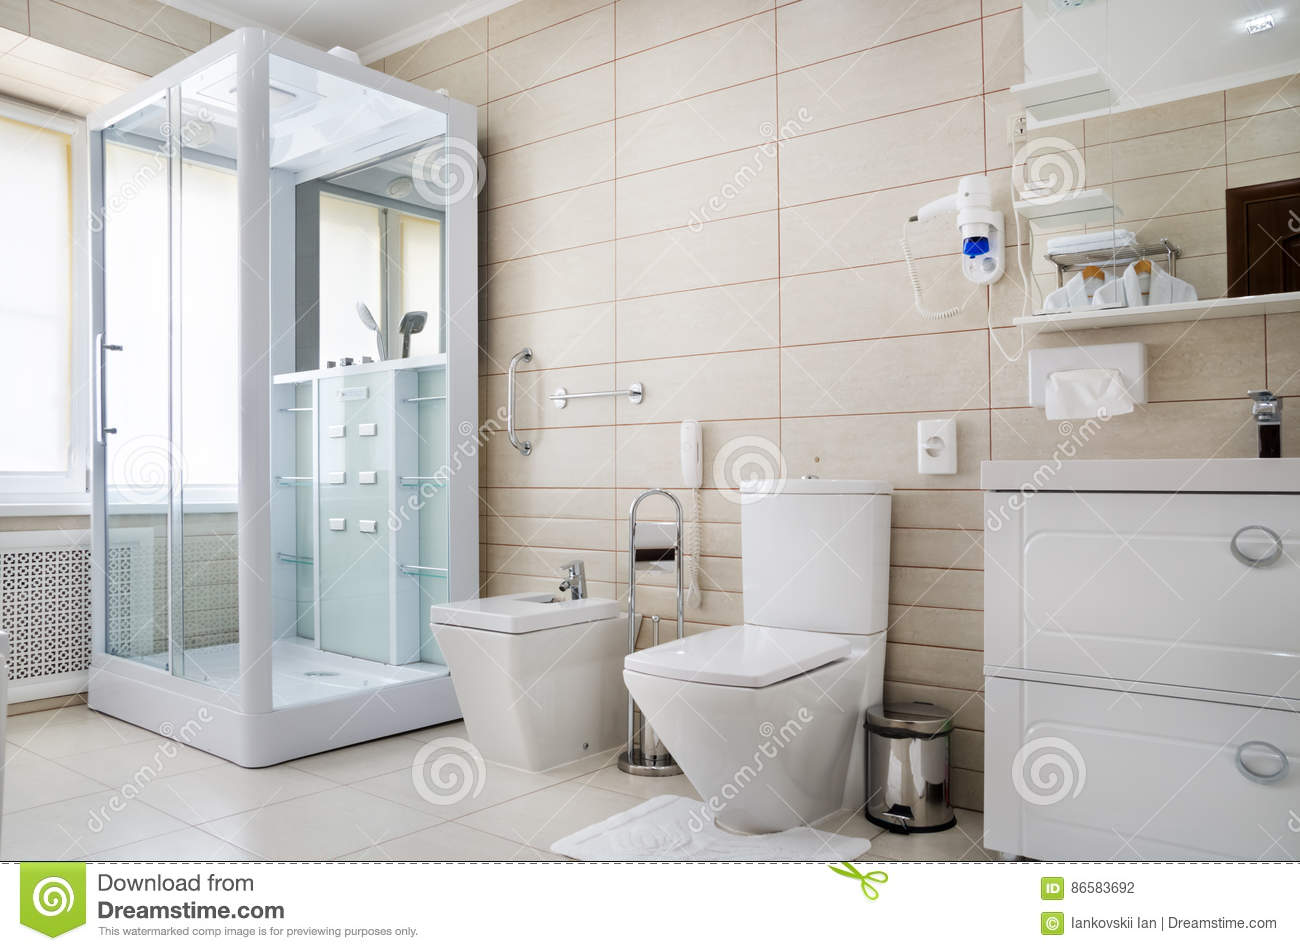 Bathroom In Warm Colors, With A Toilet, A Bathtub, A Hairdryer, A ...